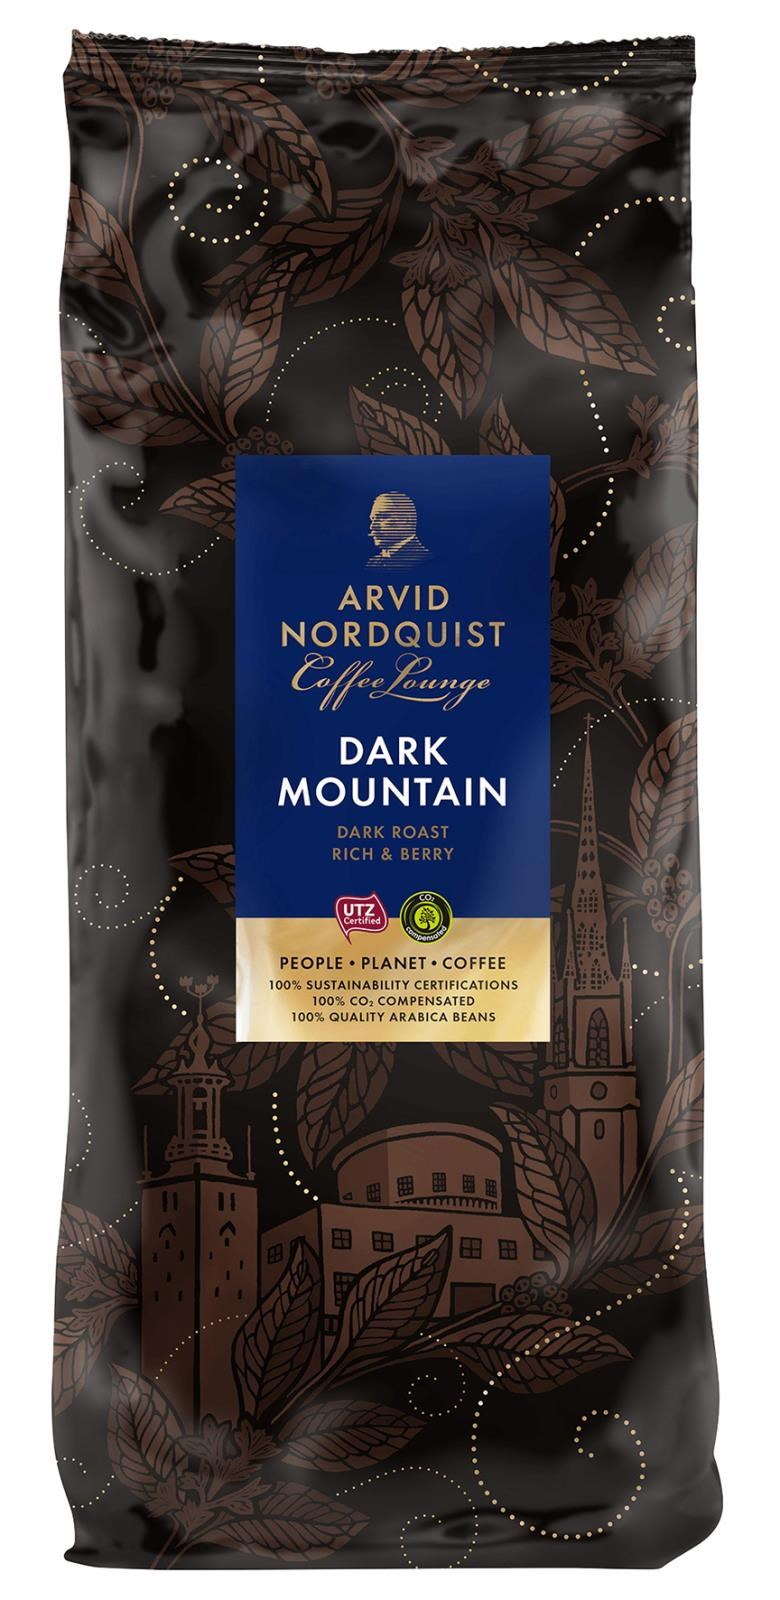 Kaffe Arvid Nordquist Dark Mountain hela bönor 1000g 60100223